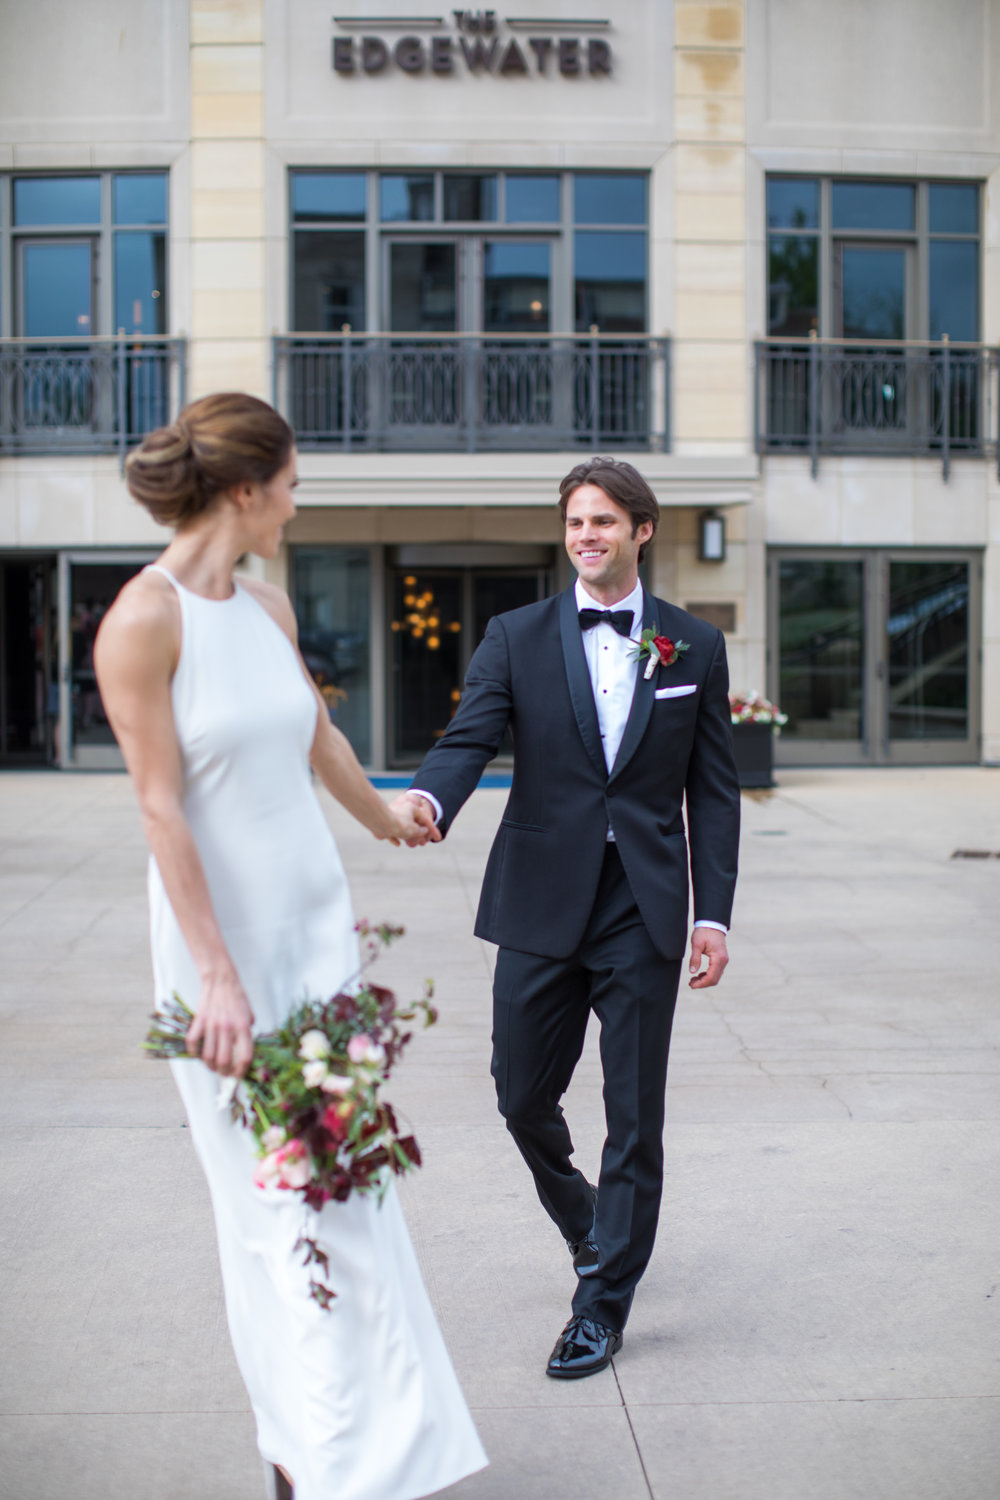 Midwest wedding photographer - first look 3